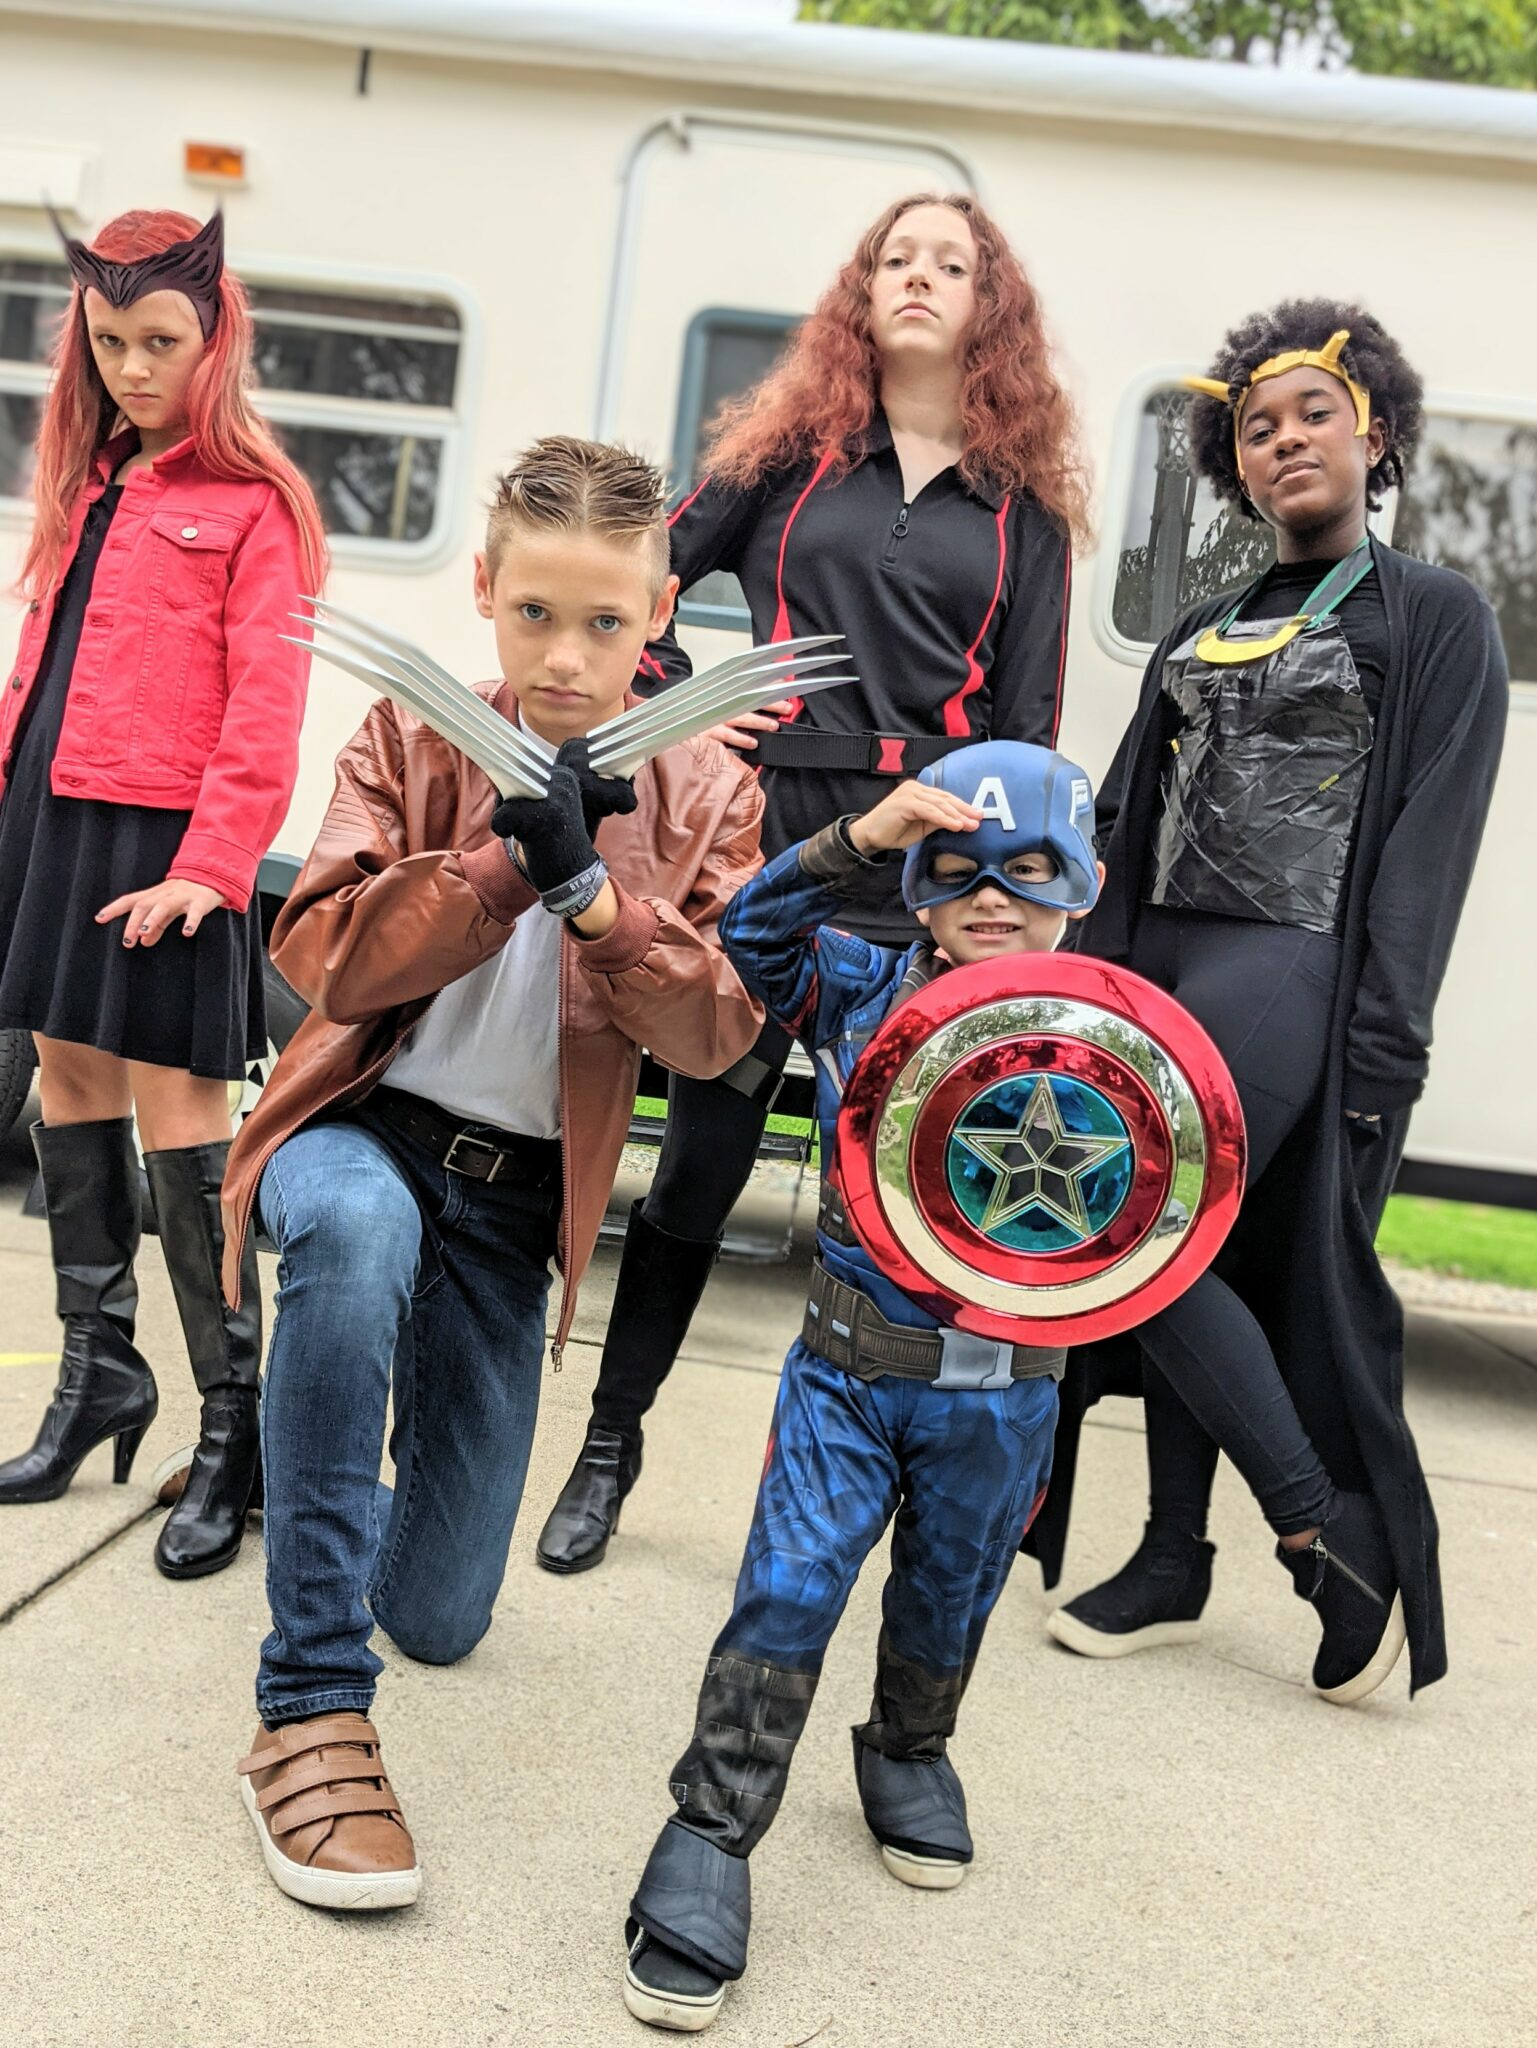 East DIY Marvel Themed Costumes for Halloween Using Regular Clothes All Things with Purpose Sarah Lemp 4